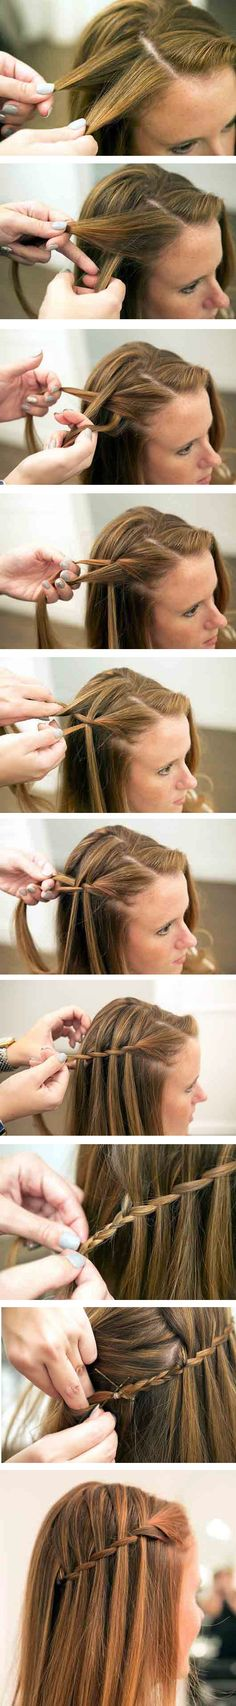 The Waterfall #Braid Tutorial – Step by Step